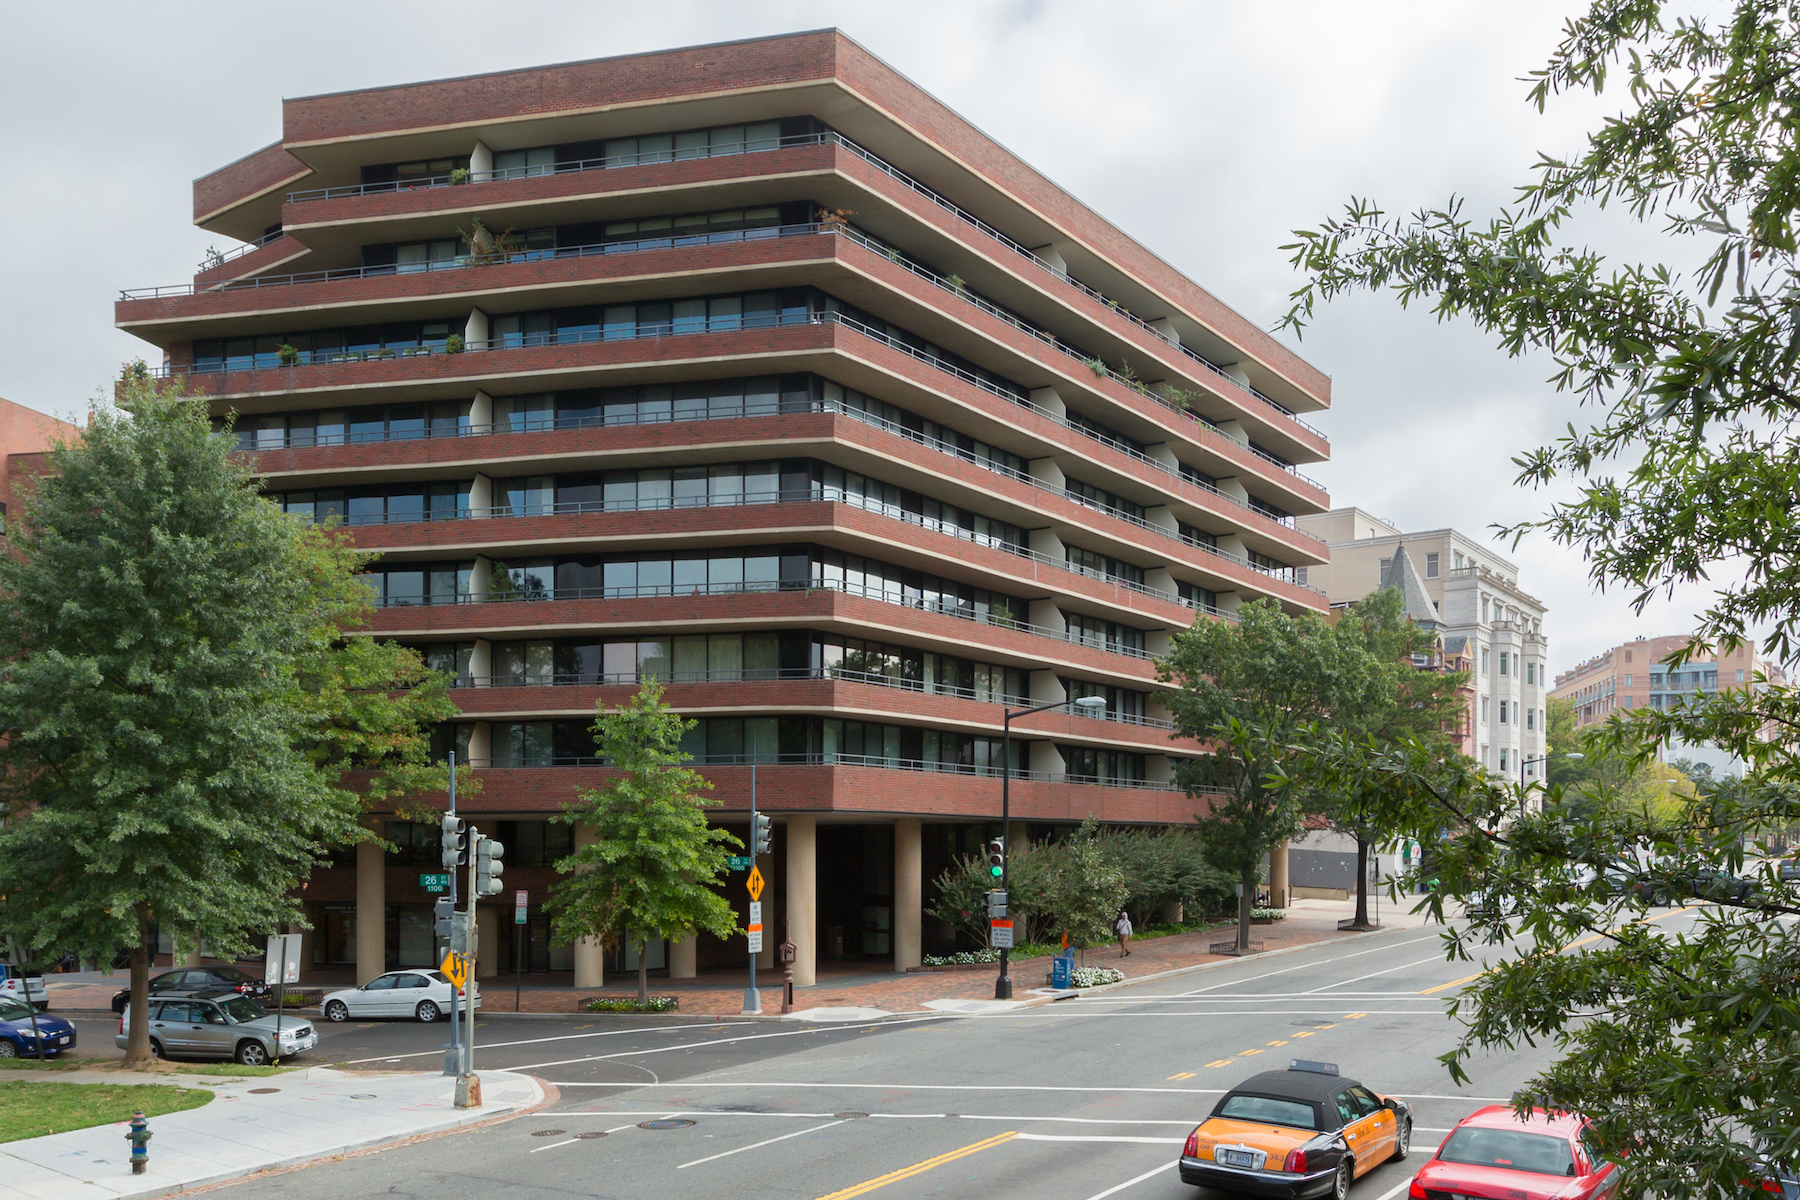 Condominium for Sale at 2555 Pennsylvania Ave Nw #1c 2555 Pennsylvania Ave Nw #1c Washington, District Of Columbia 20037 United States